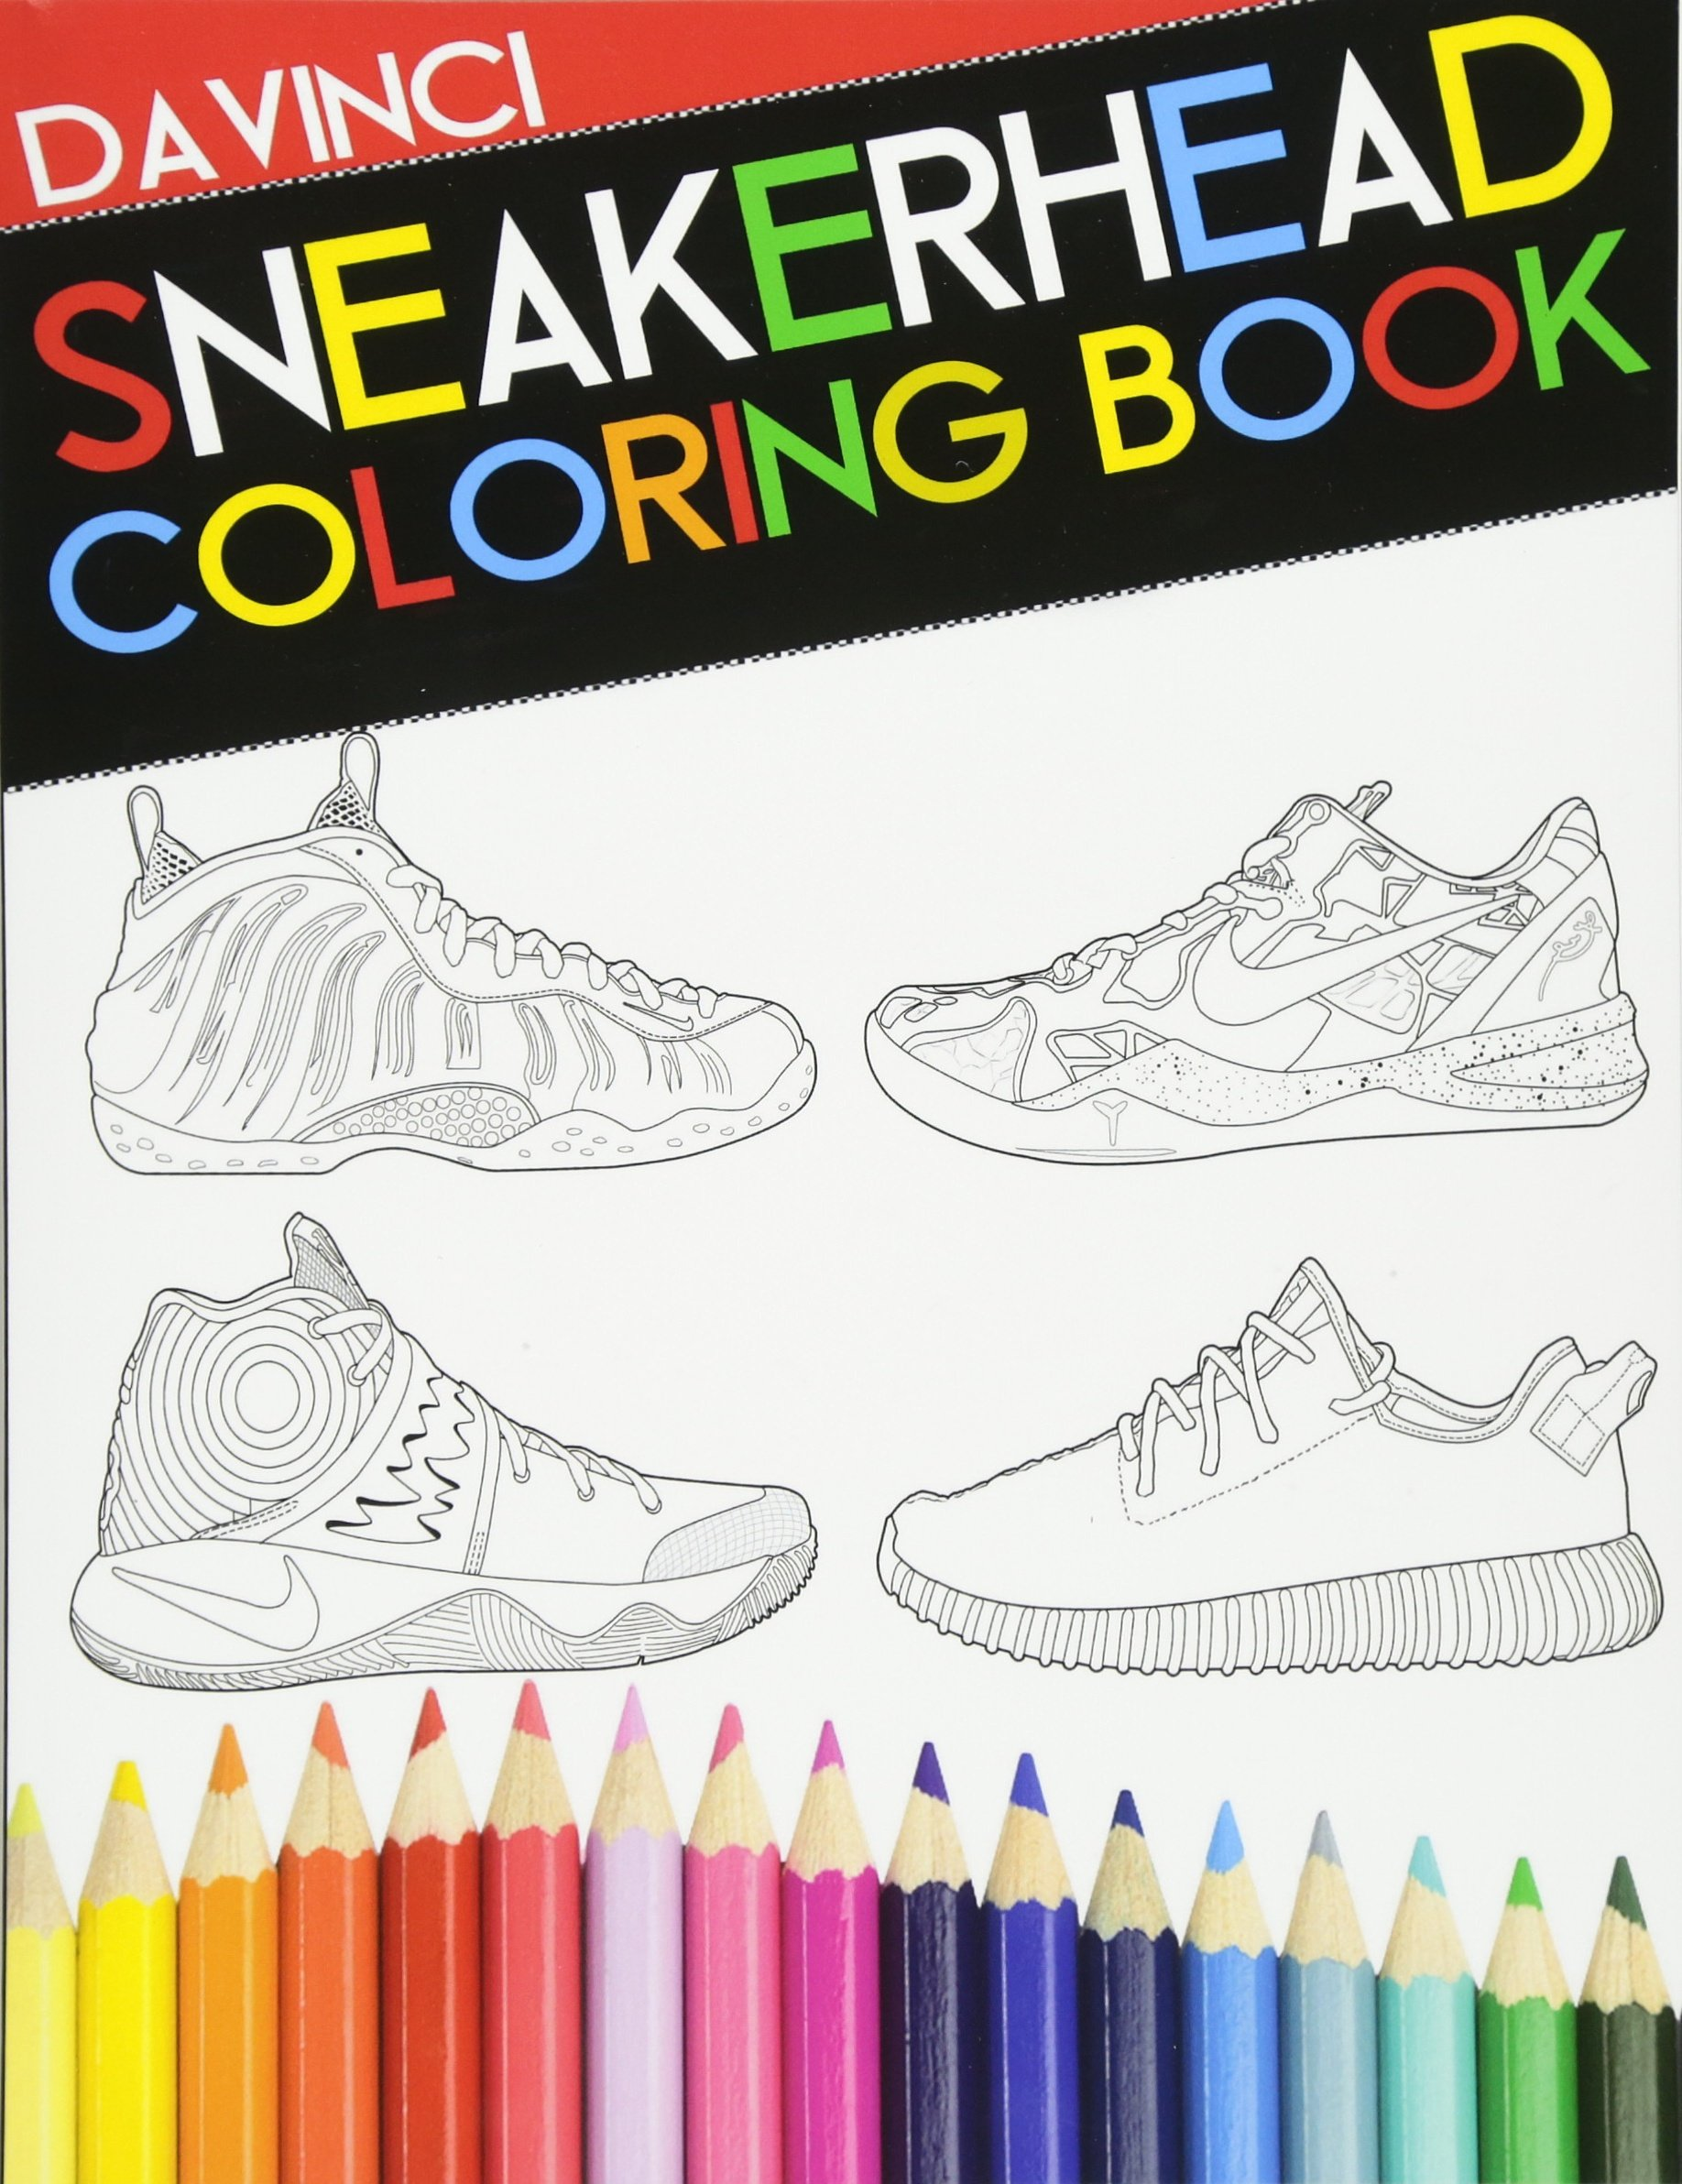 sneakerhead coloring book davinci 9780692733189 amazon com books